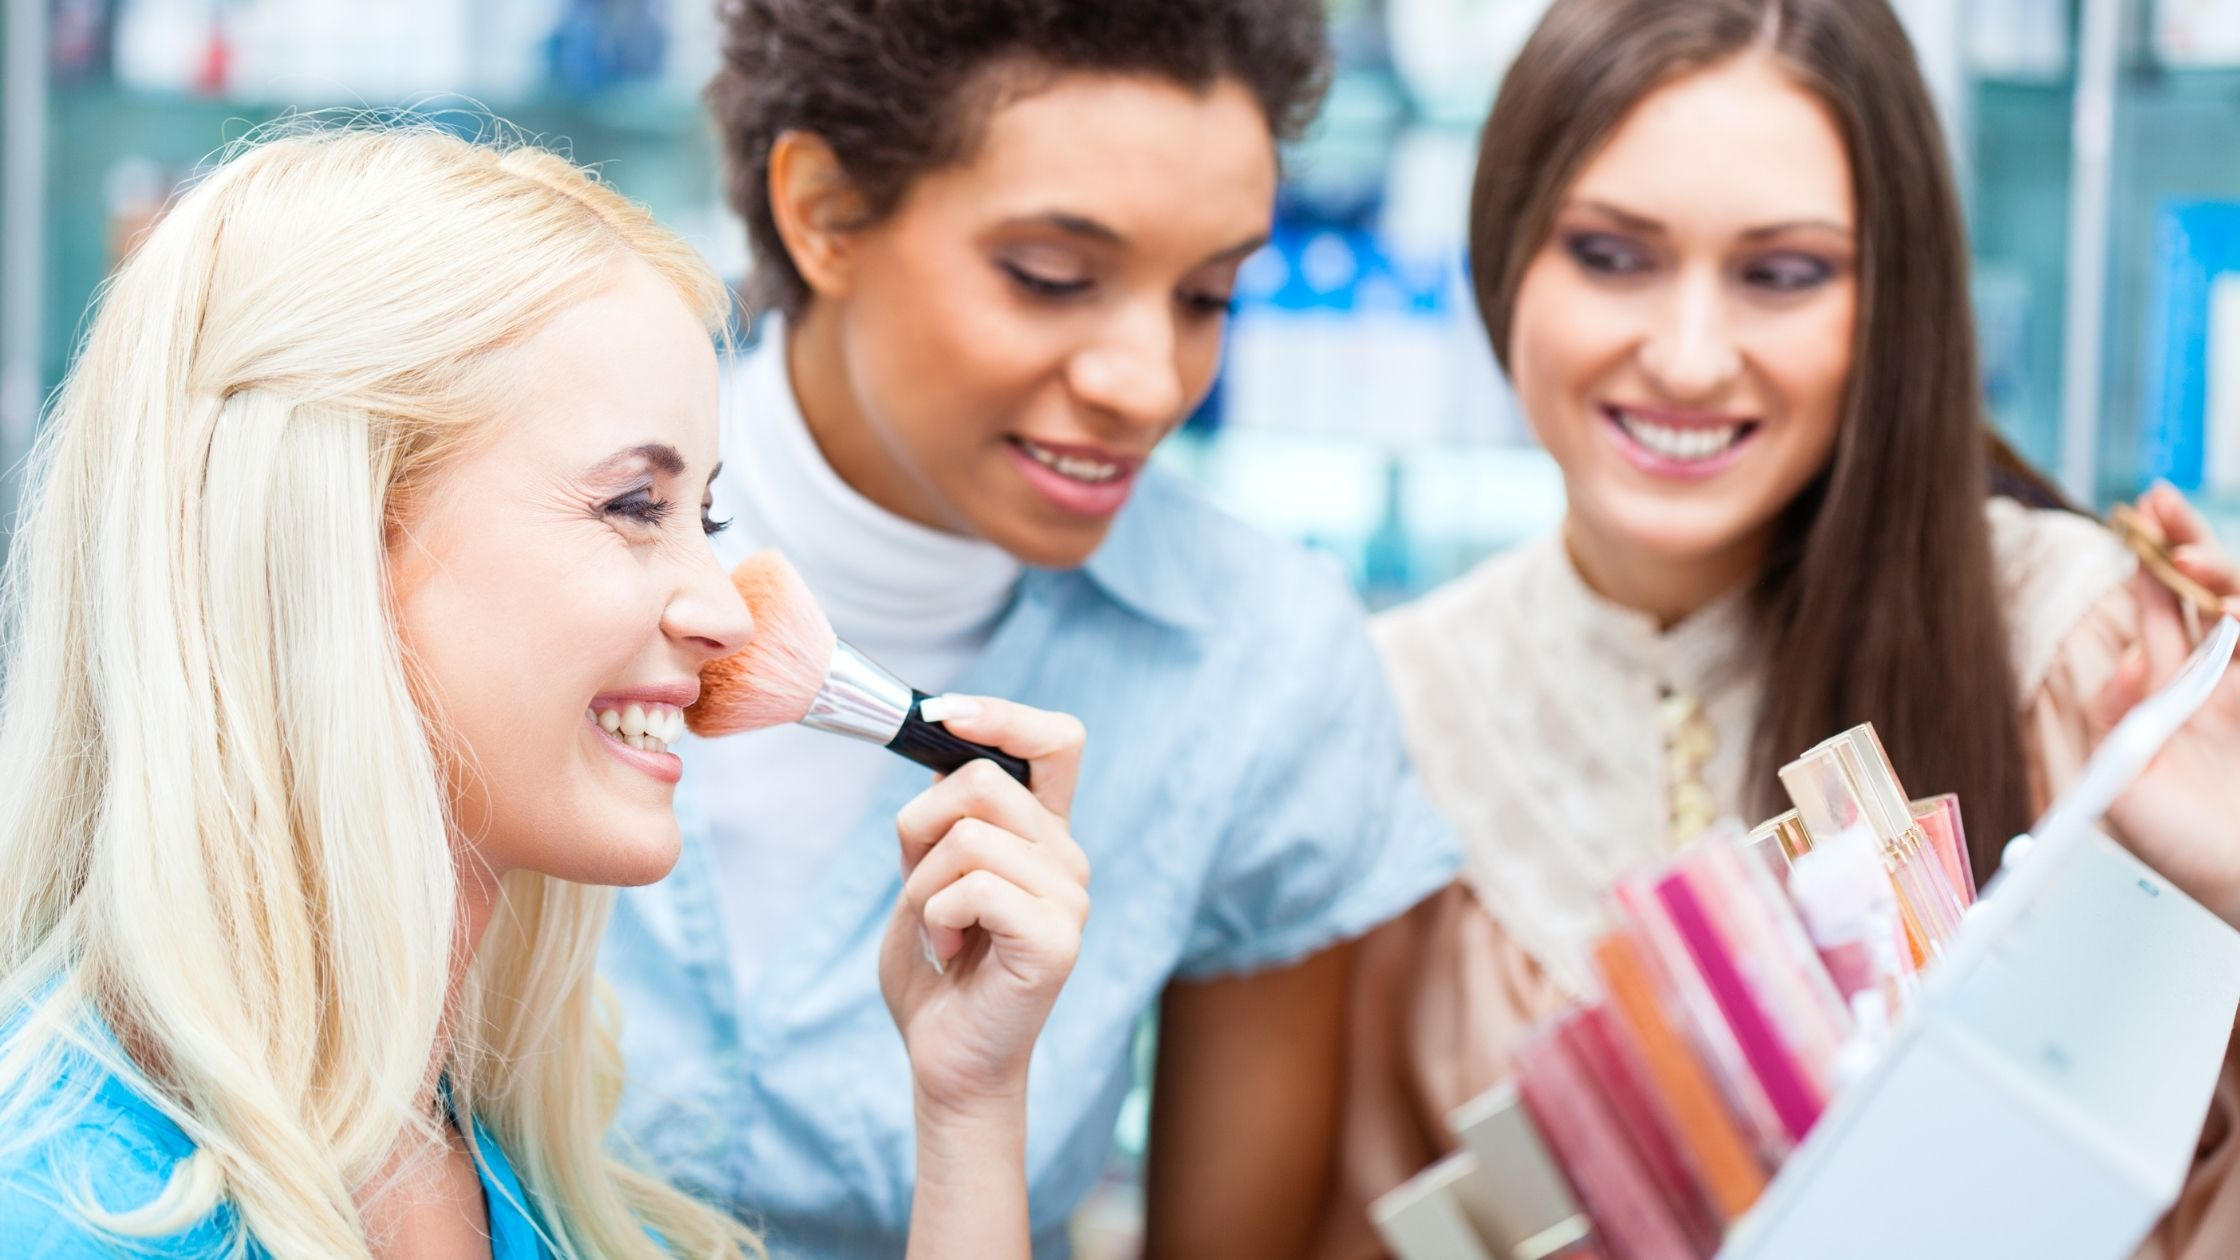 three women trying makeup on in a shop